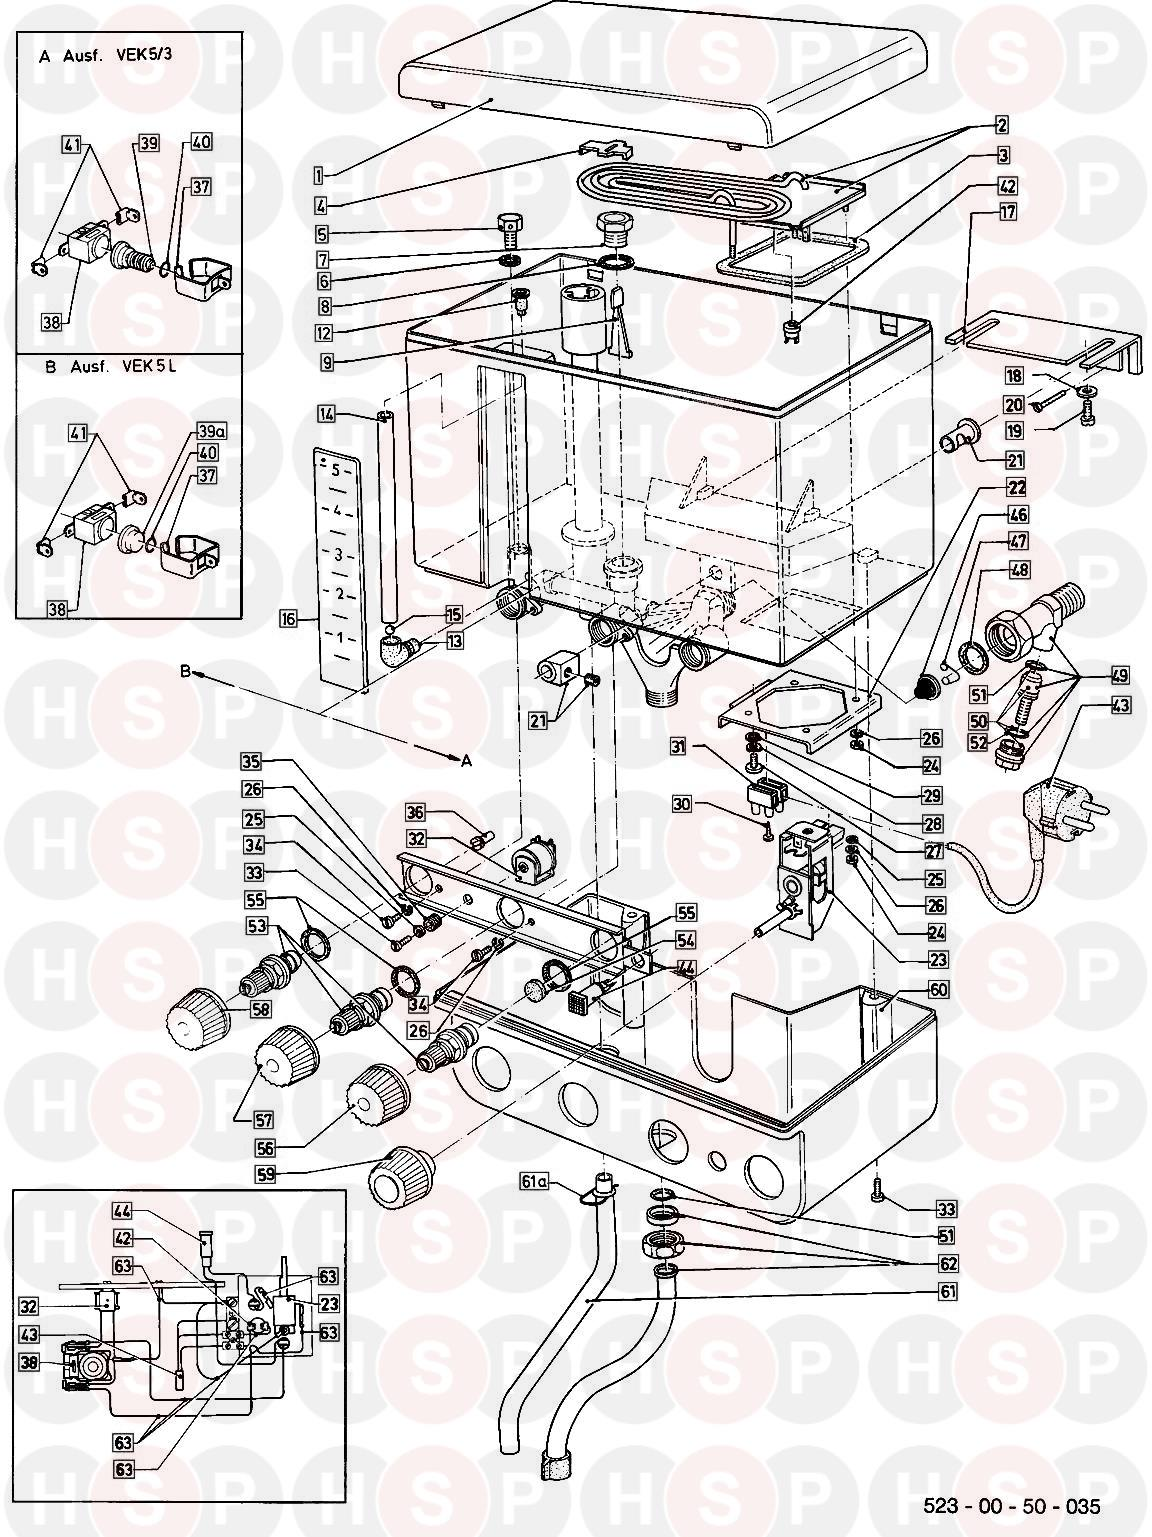 Vaillant VEK 5/3L WATER HEATER 1987-1995 (EXPLODED VIEW